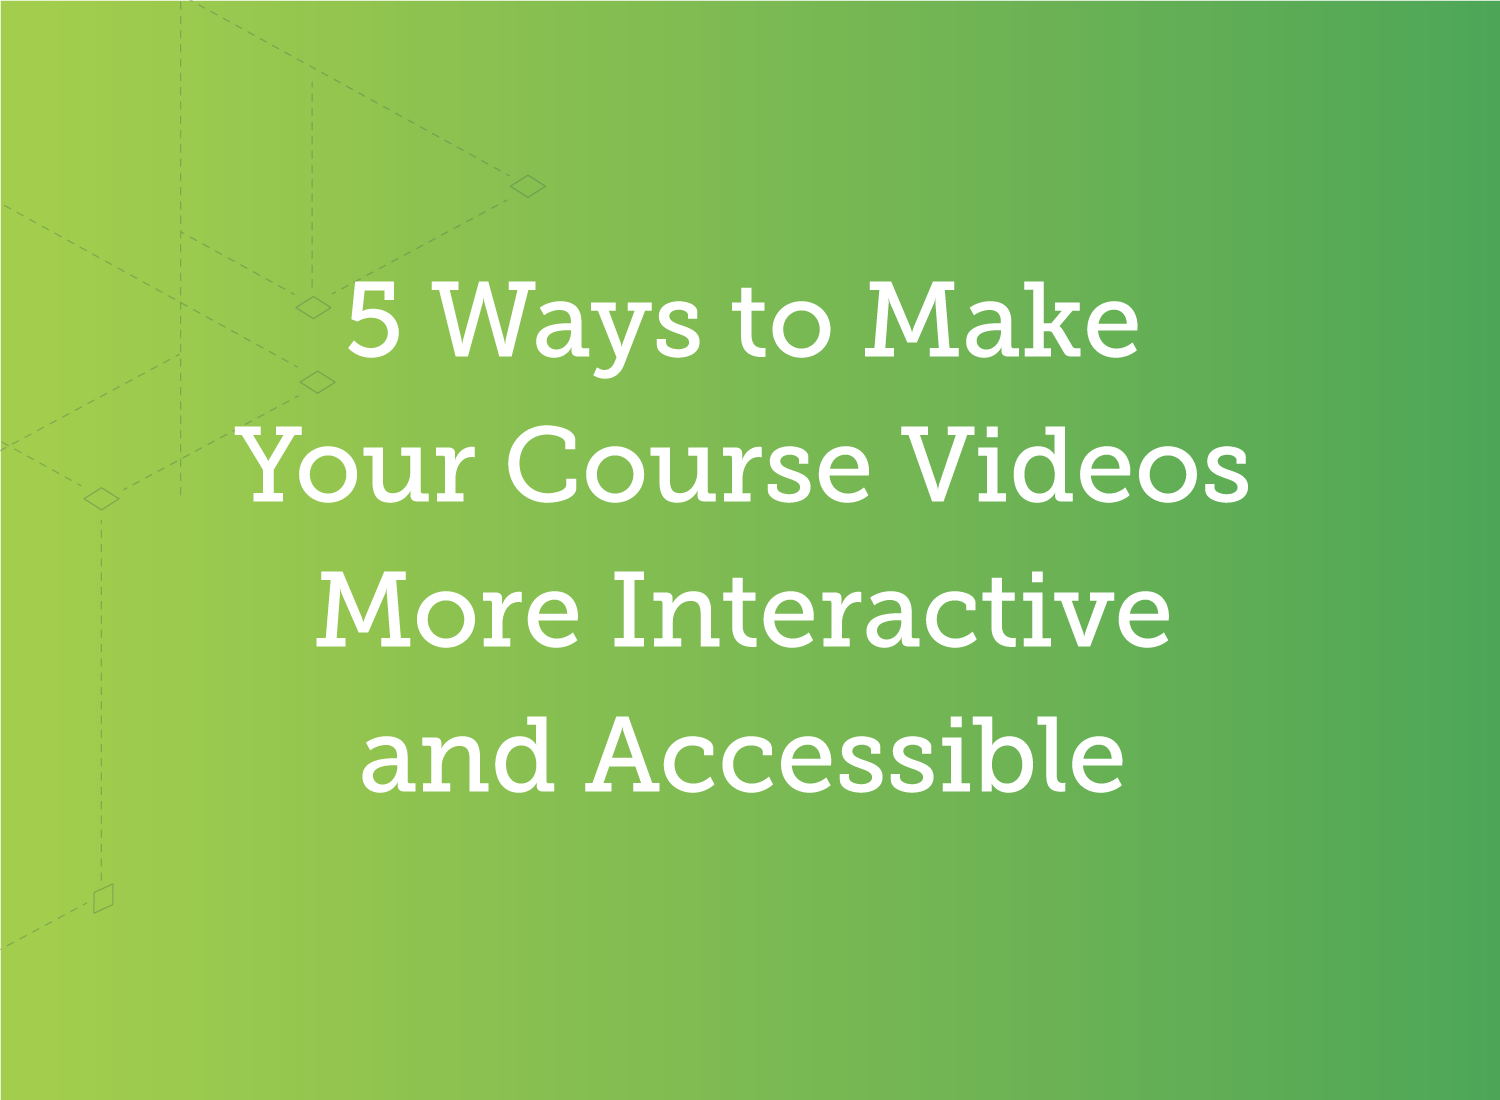 5 Ways to Make Your Course Videos More Interactive and Accessible